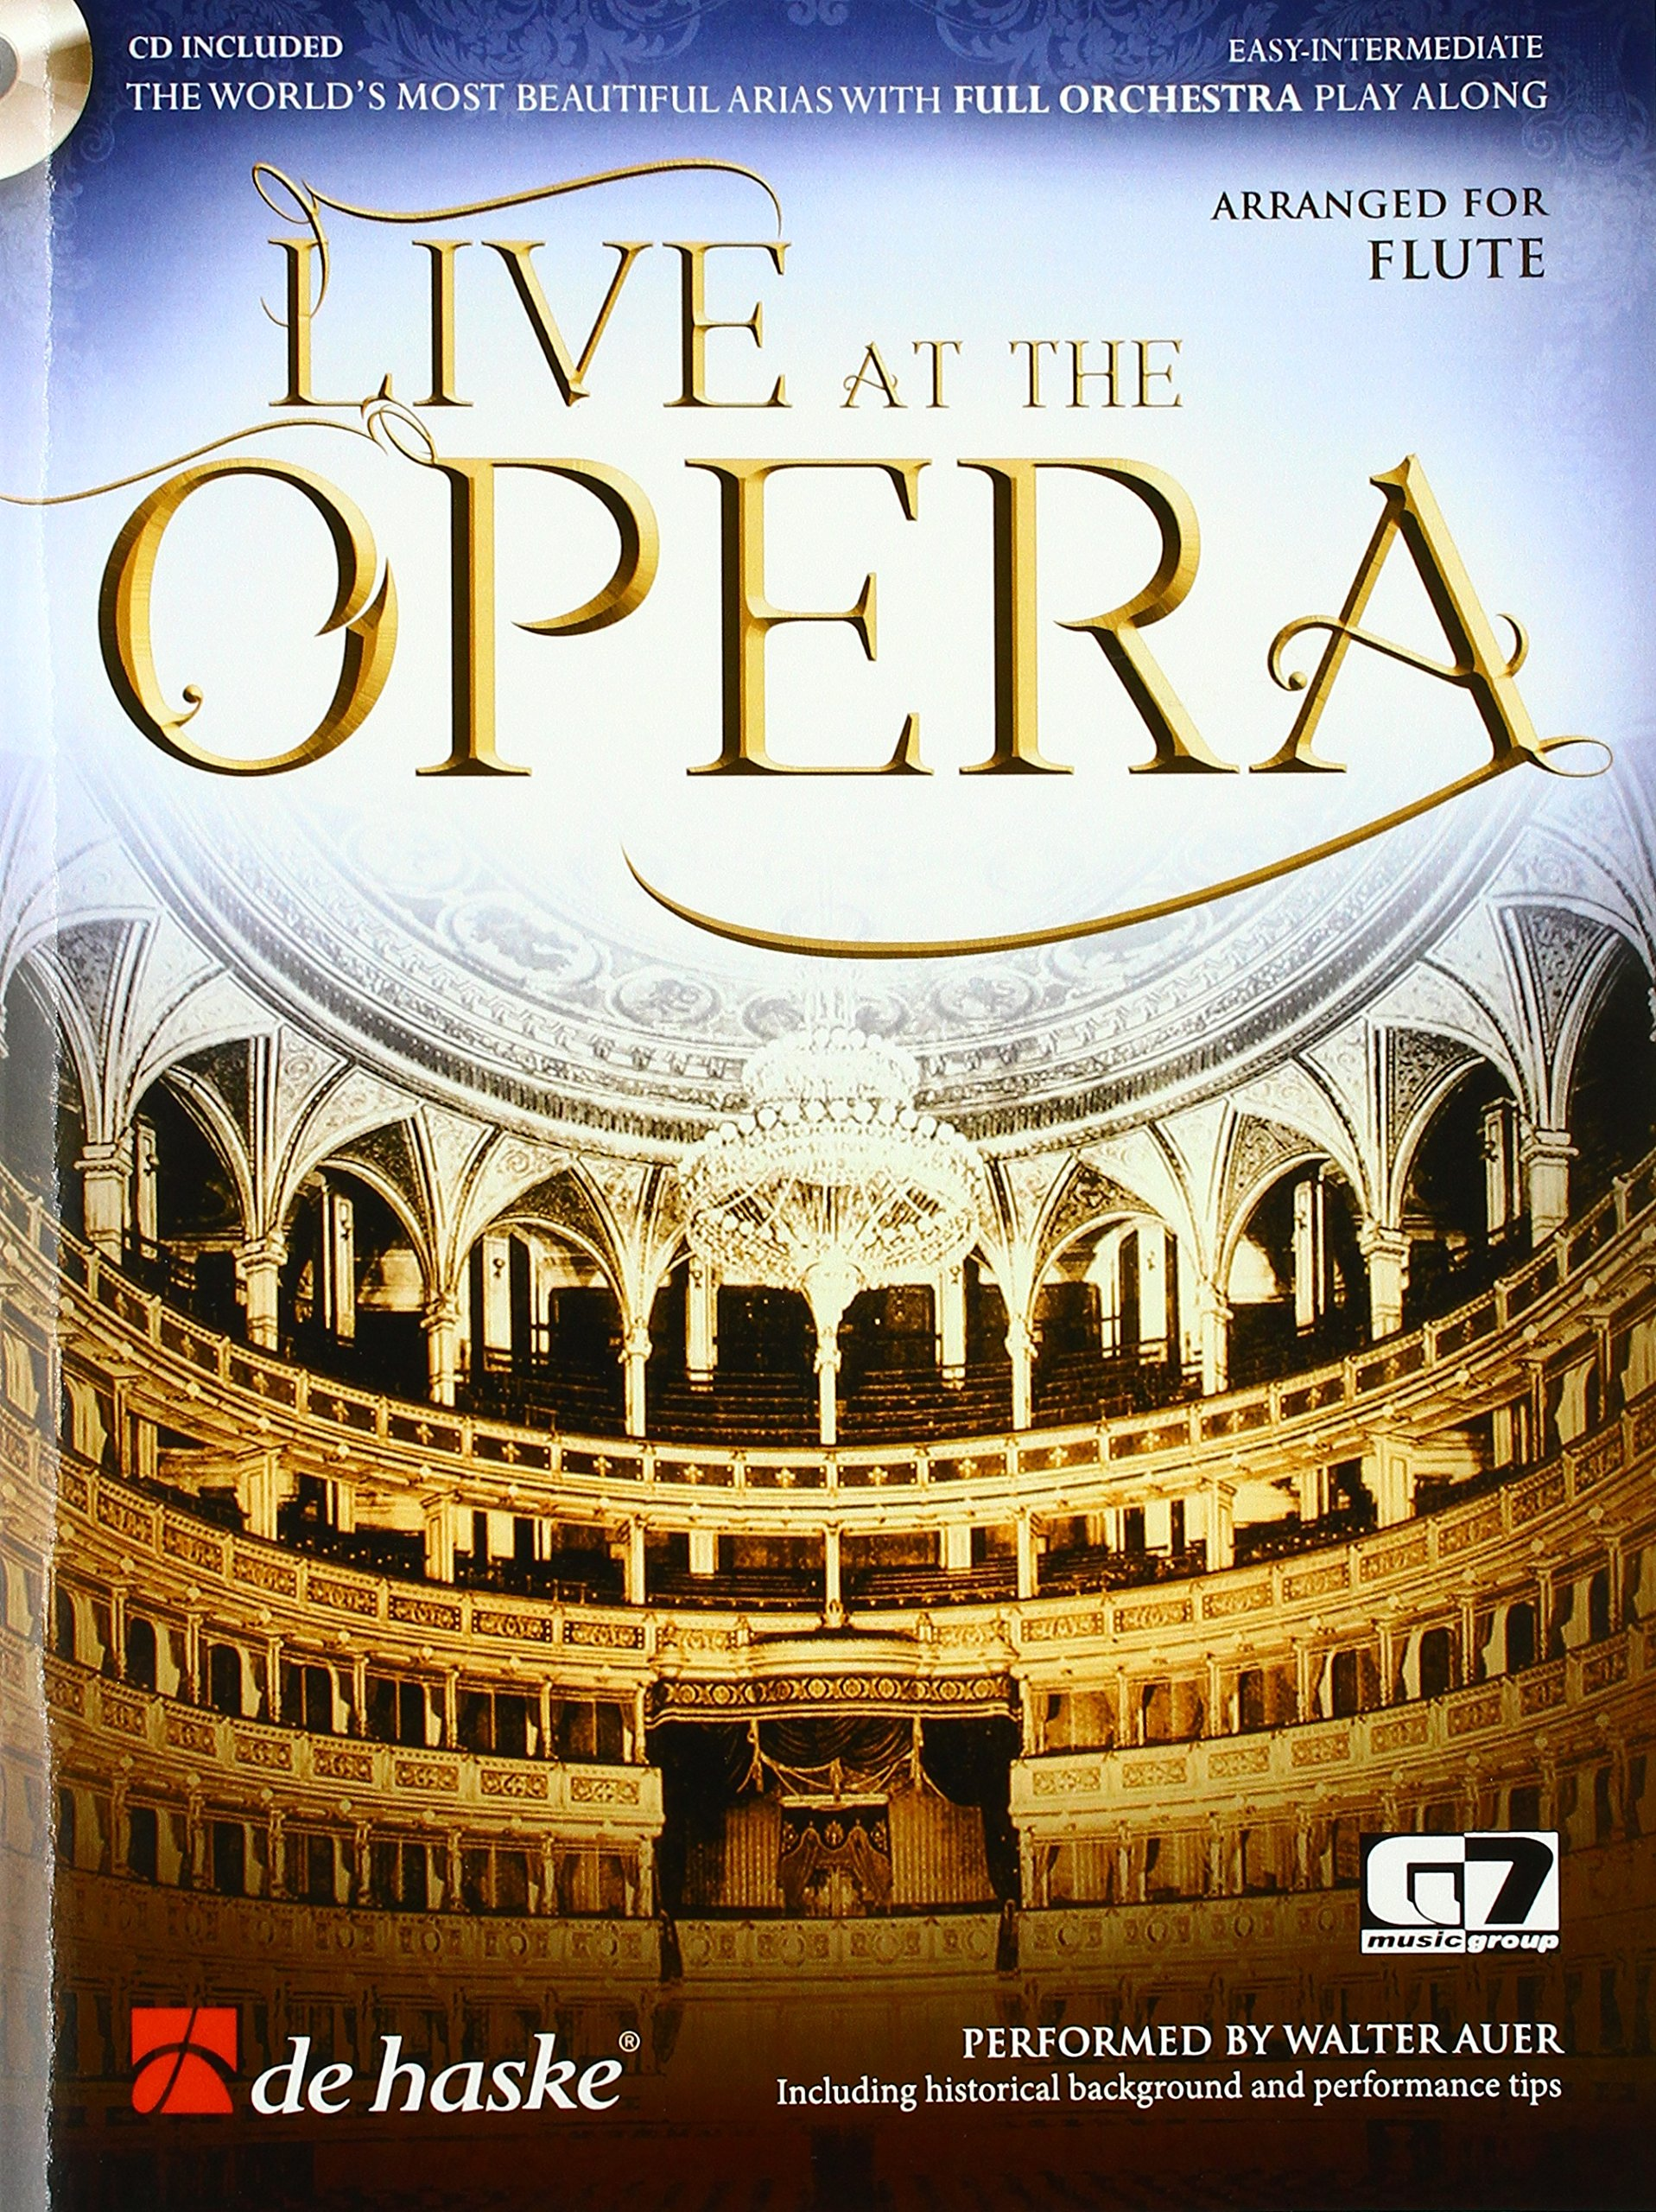 Live at the Opera - The world's most beautiful arias with full orchestra play along. Flute